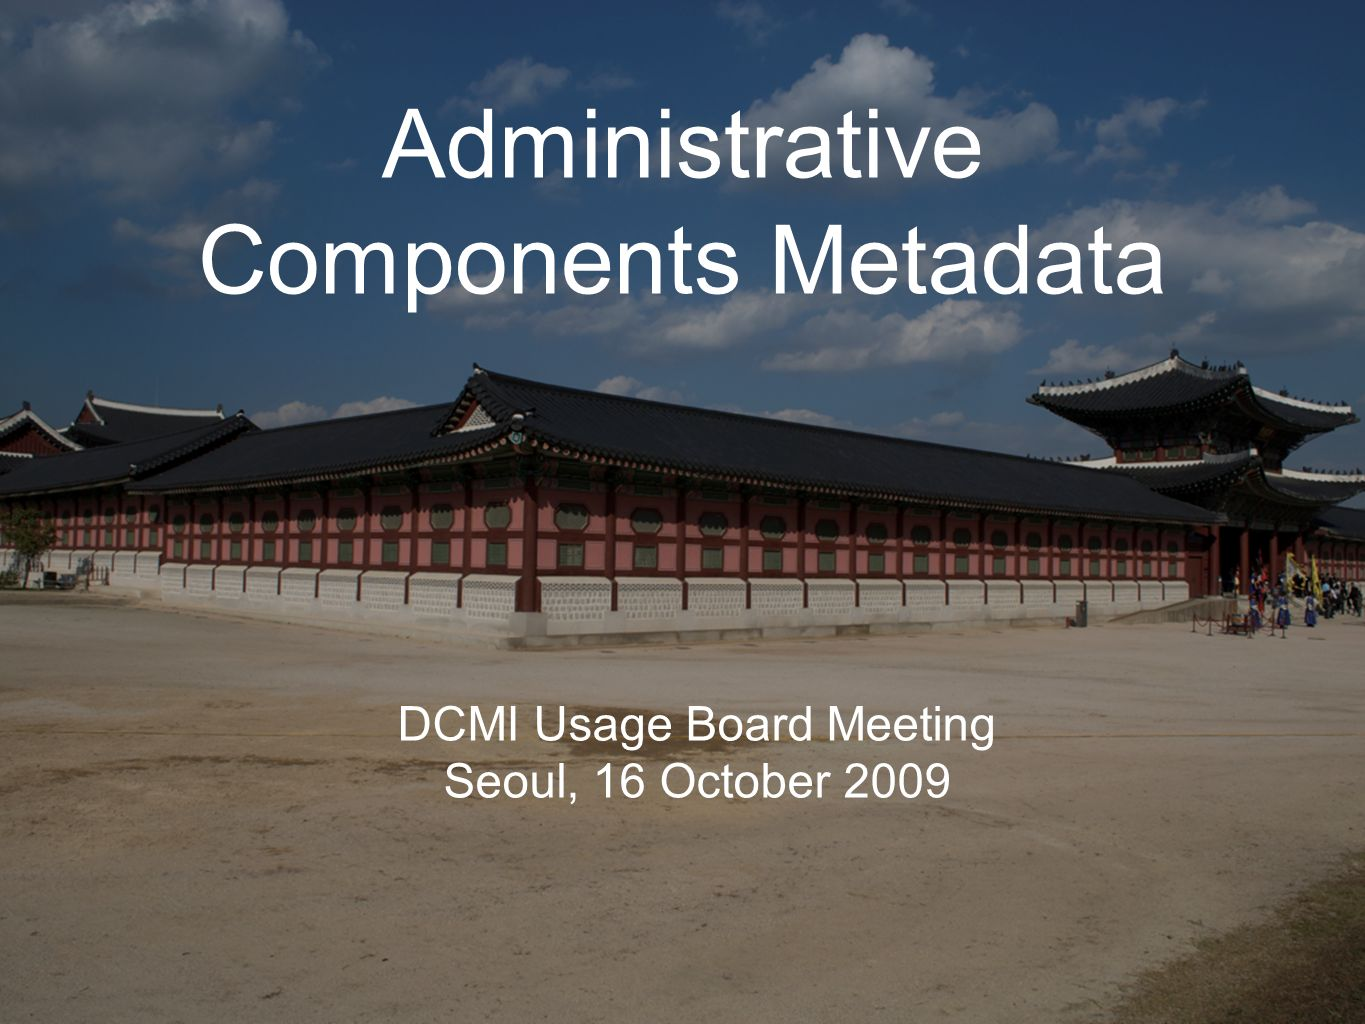 Administrative Components Metadata DCMI Usage Board Meeting Seoul, 16 October 2009